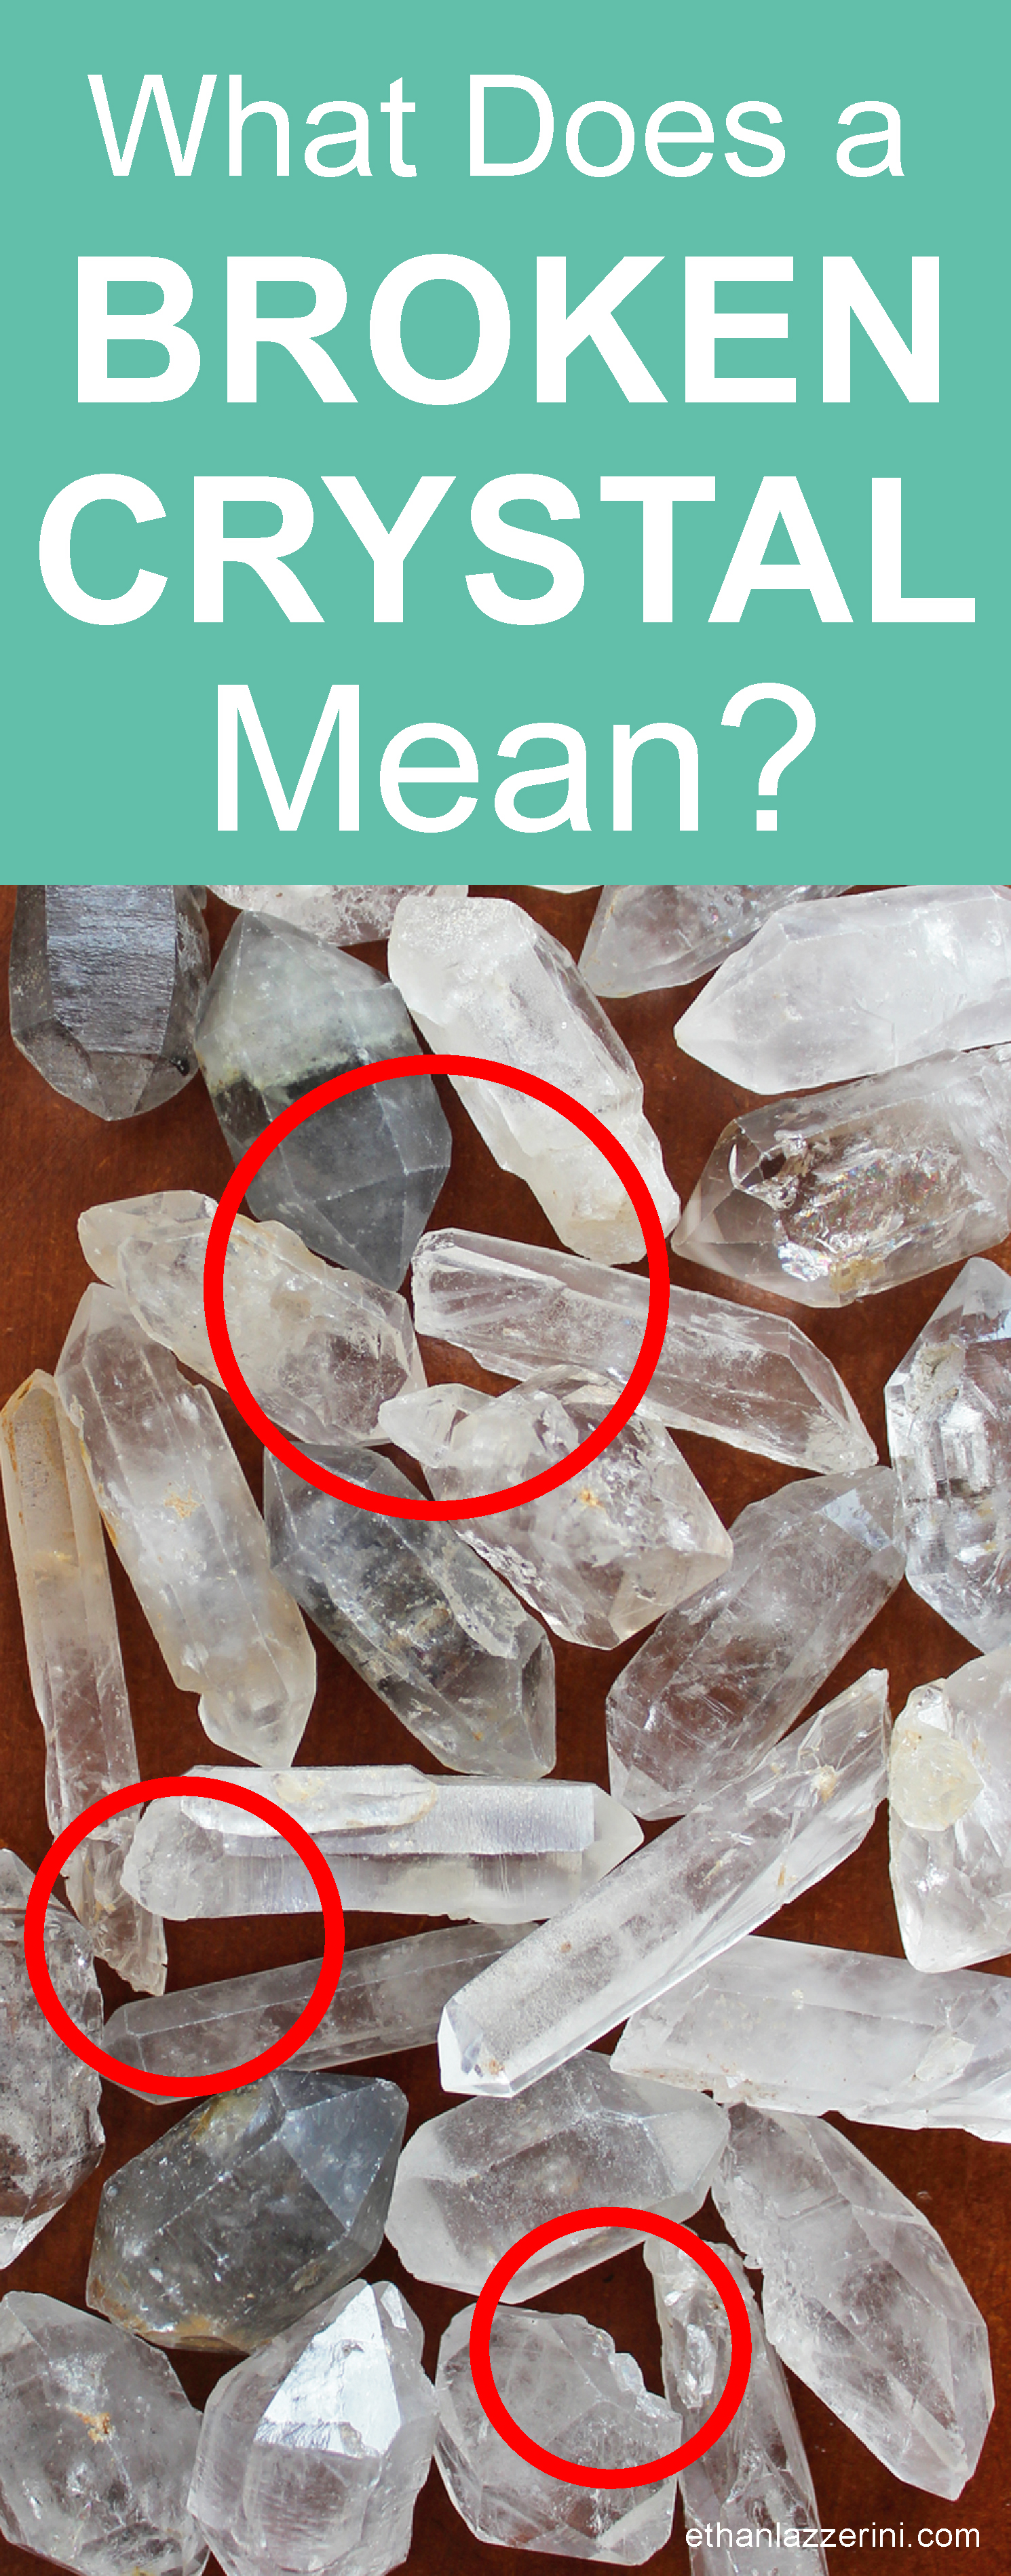 What Does a Broken Crystal Mean? - Ethan Lazzerini